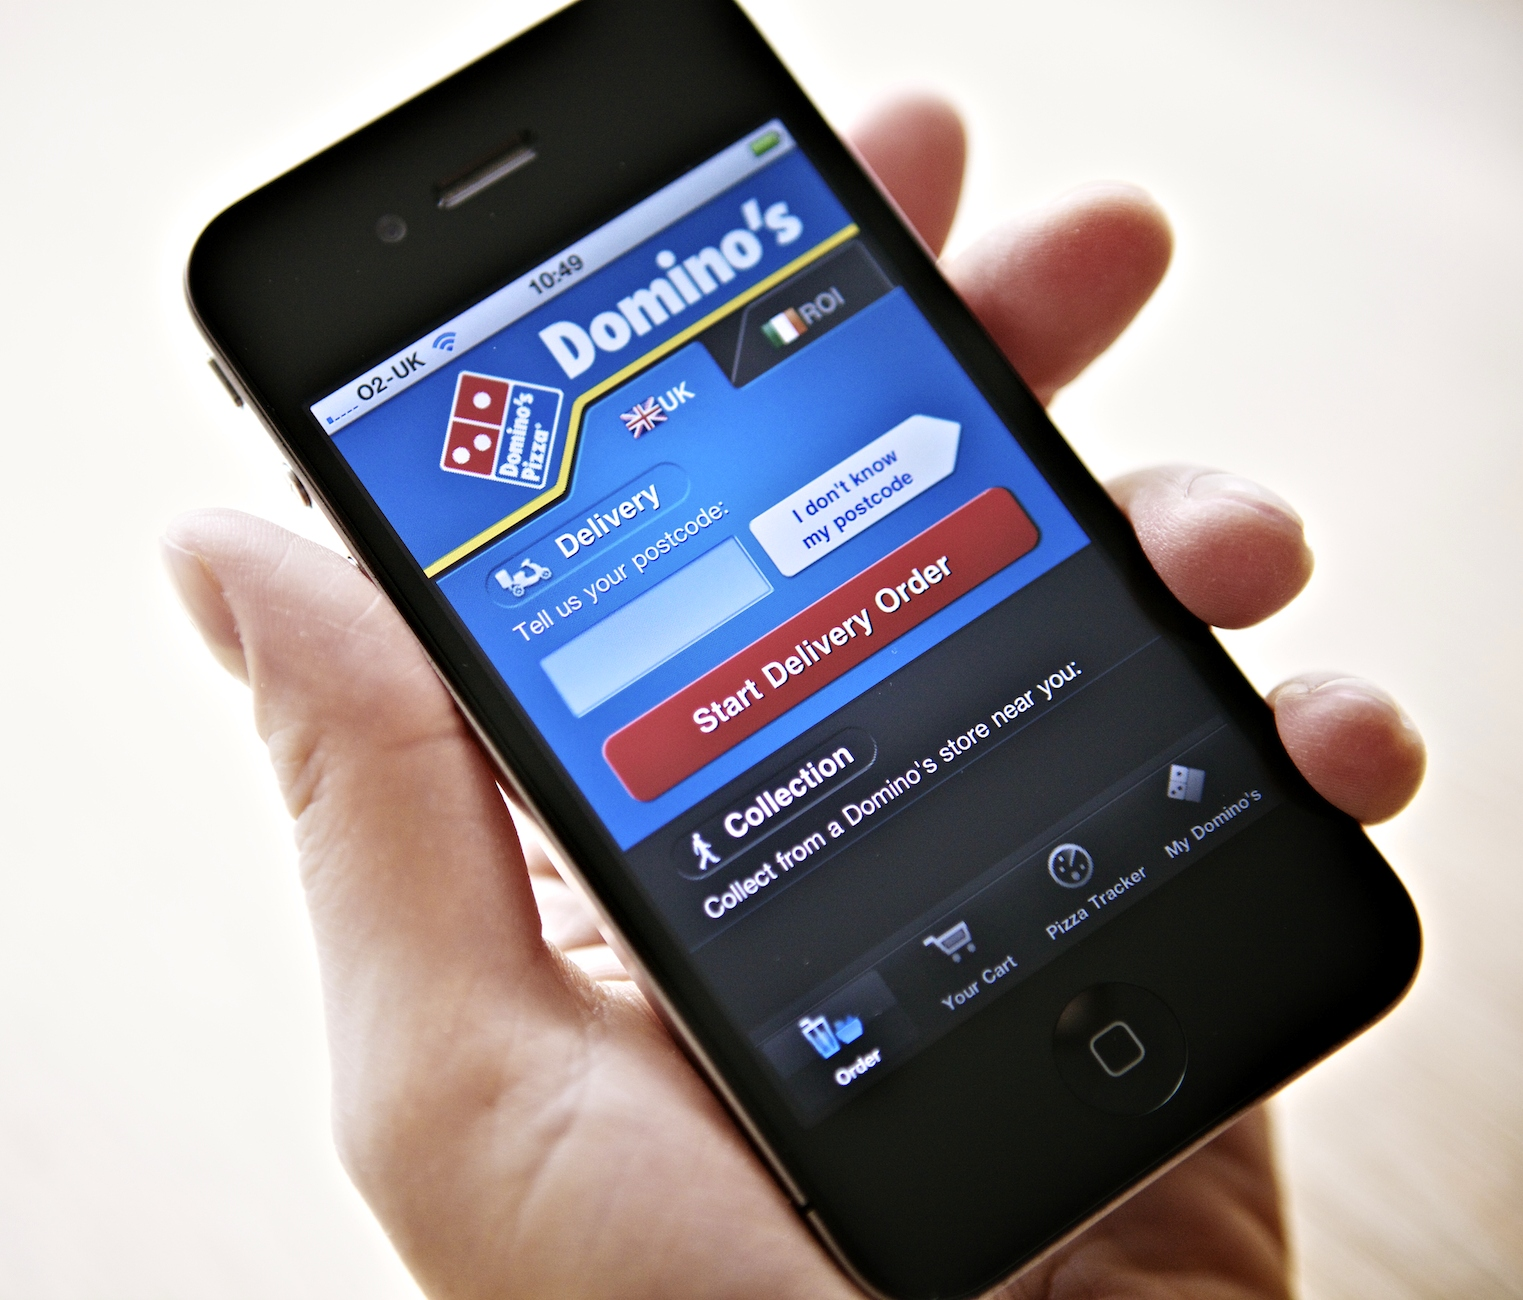 Mobile Made Up a Fifth of Domino's UK Delivery Sales in 2013